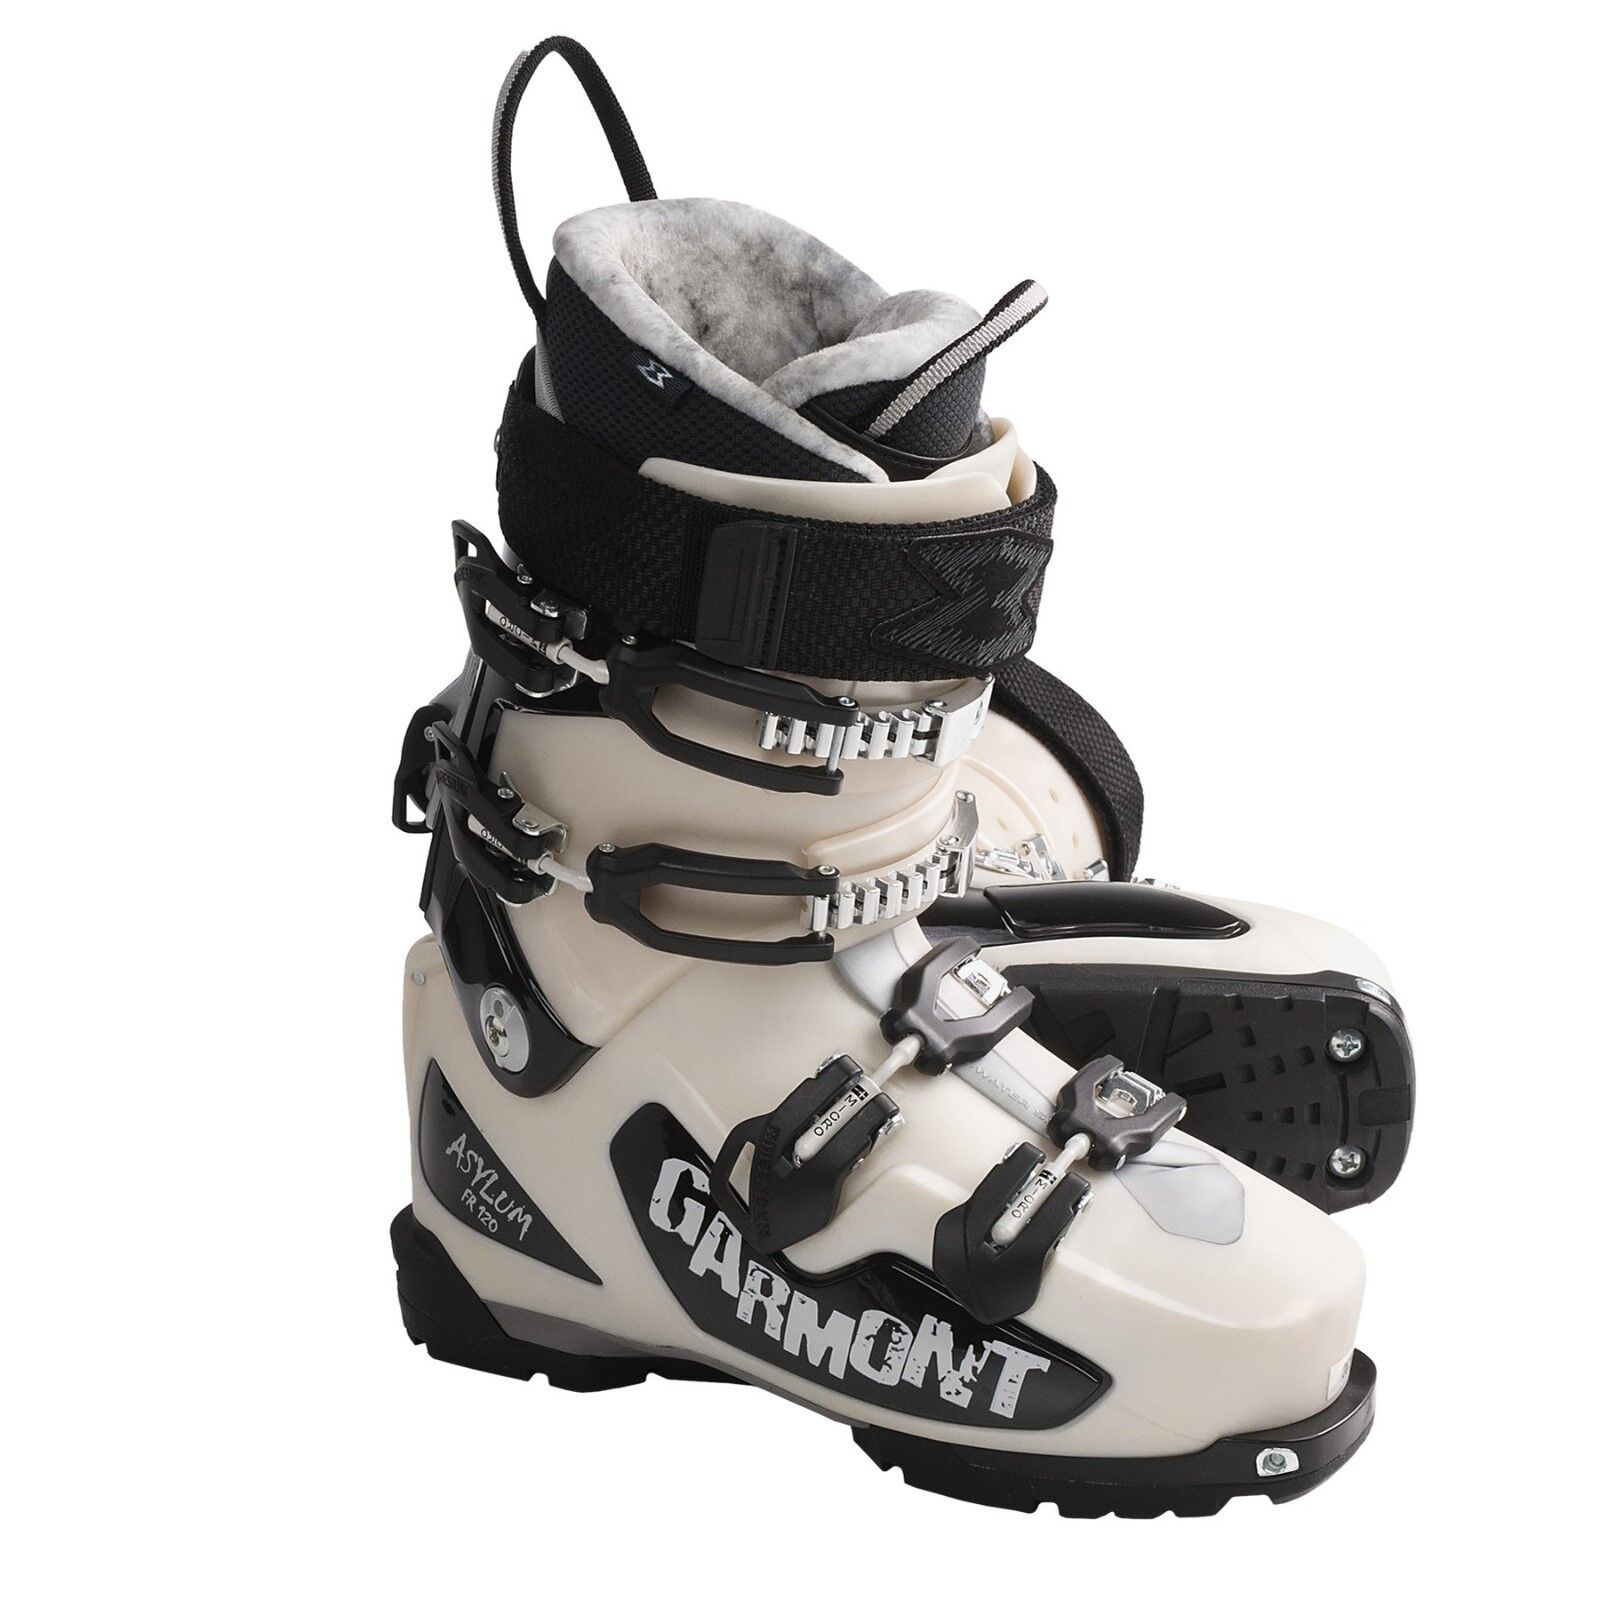 New  Garmont Women's Asylum Alpine Touring Ski Boots - Dynafit Compatible